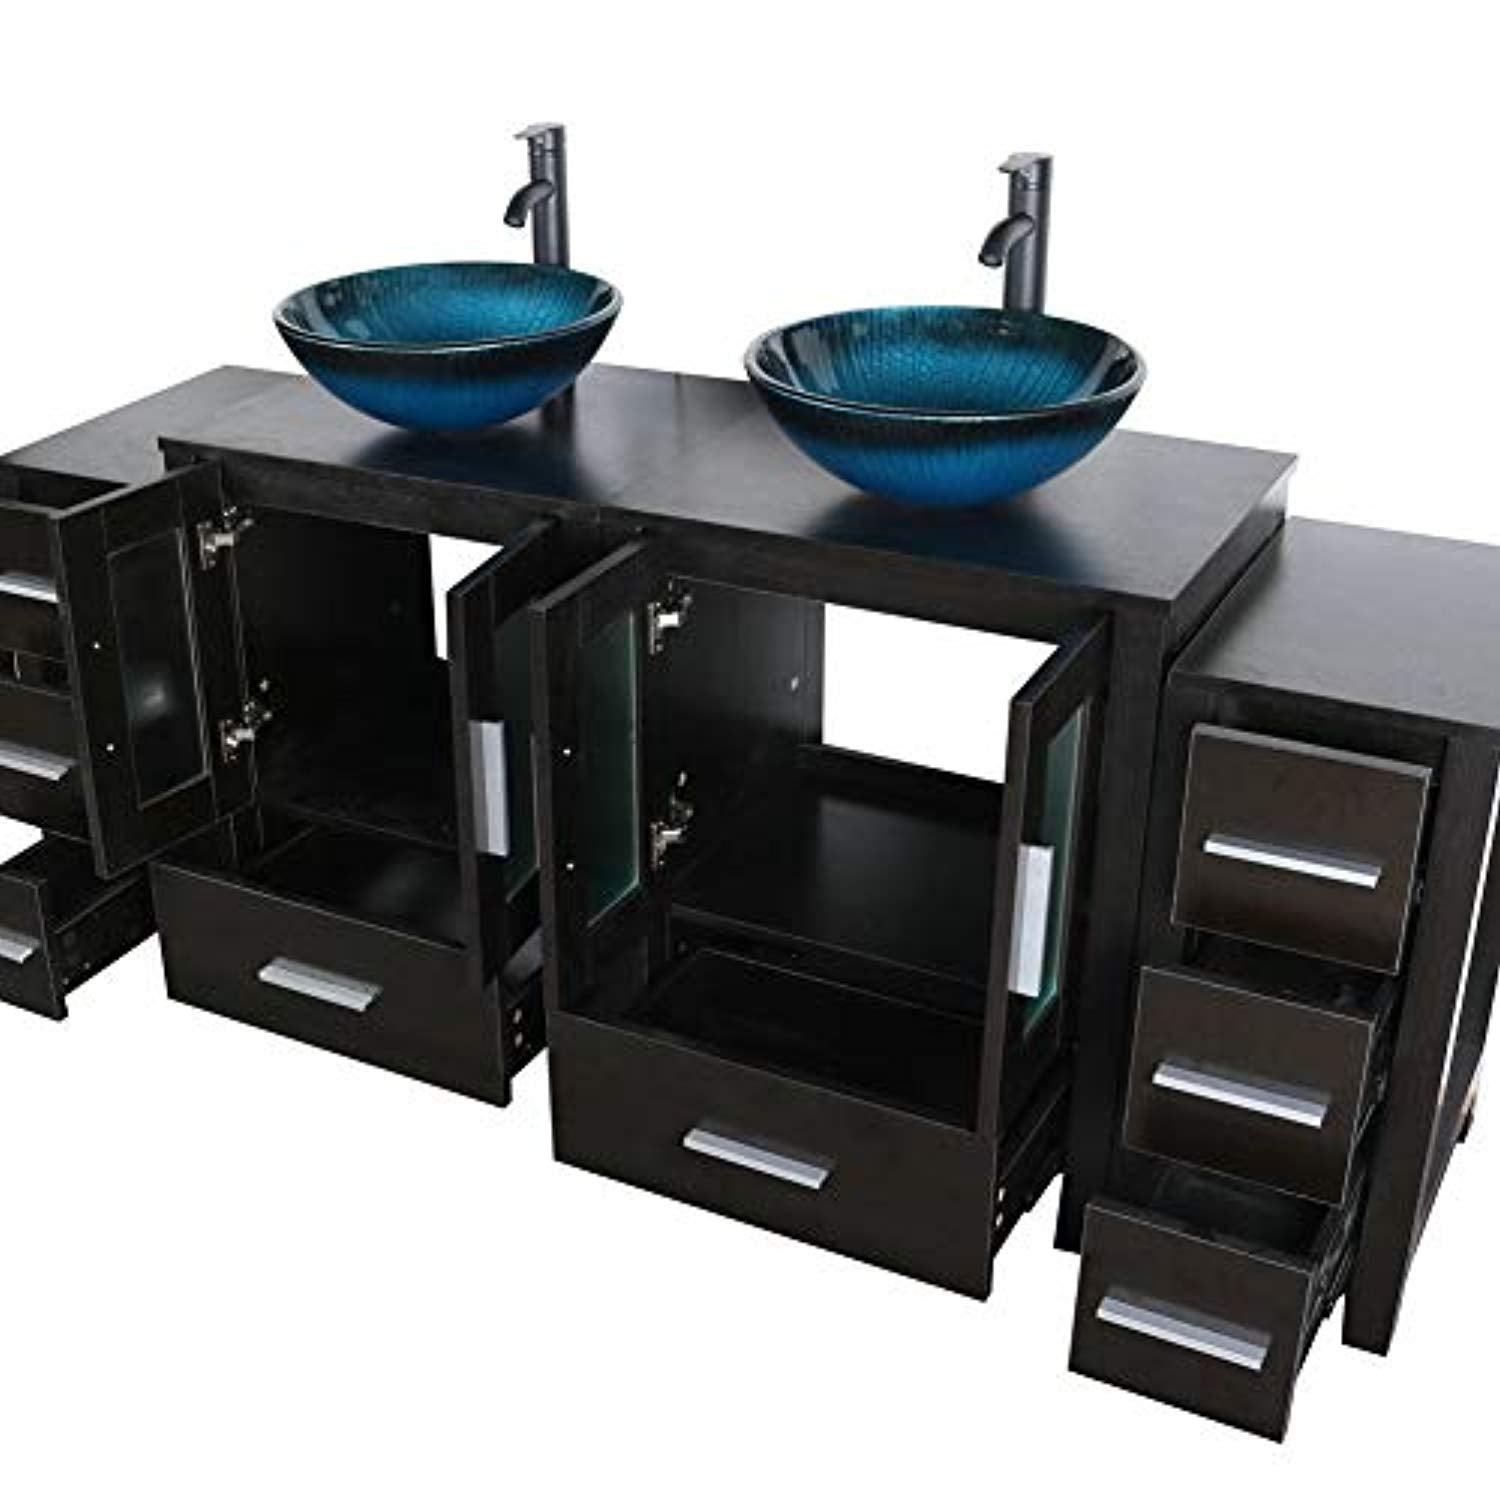 72 Black Bathroom Vanity Cabinet And Sink Combo Double Top Black Wood Ek Chic Home